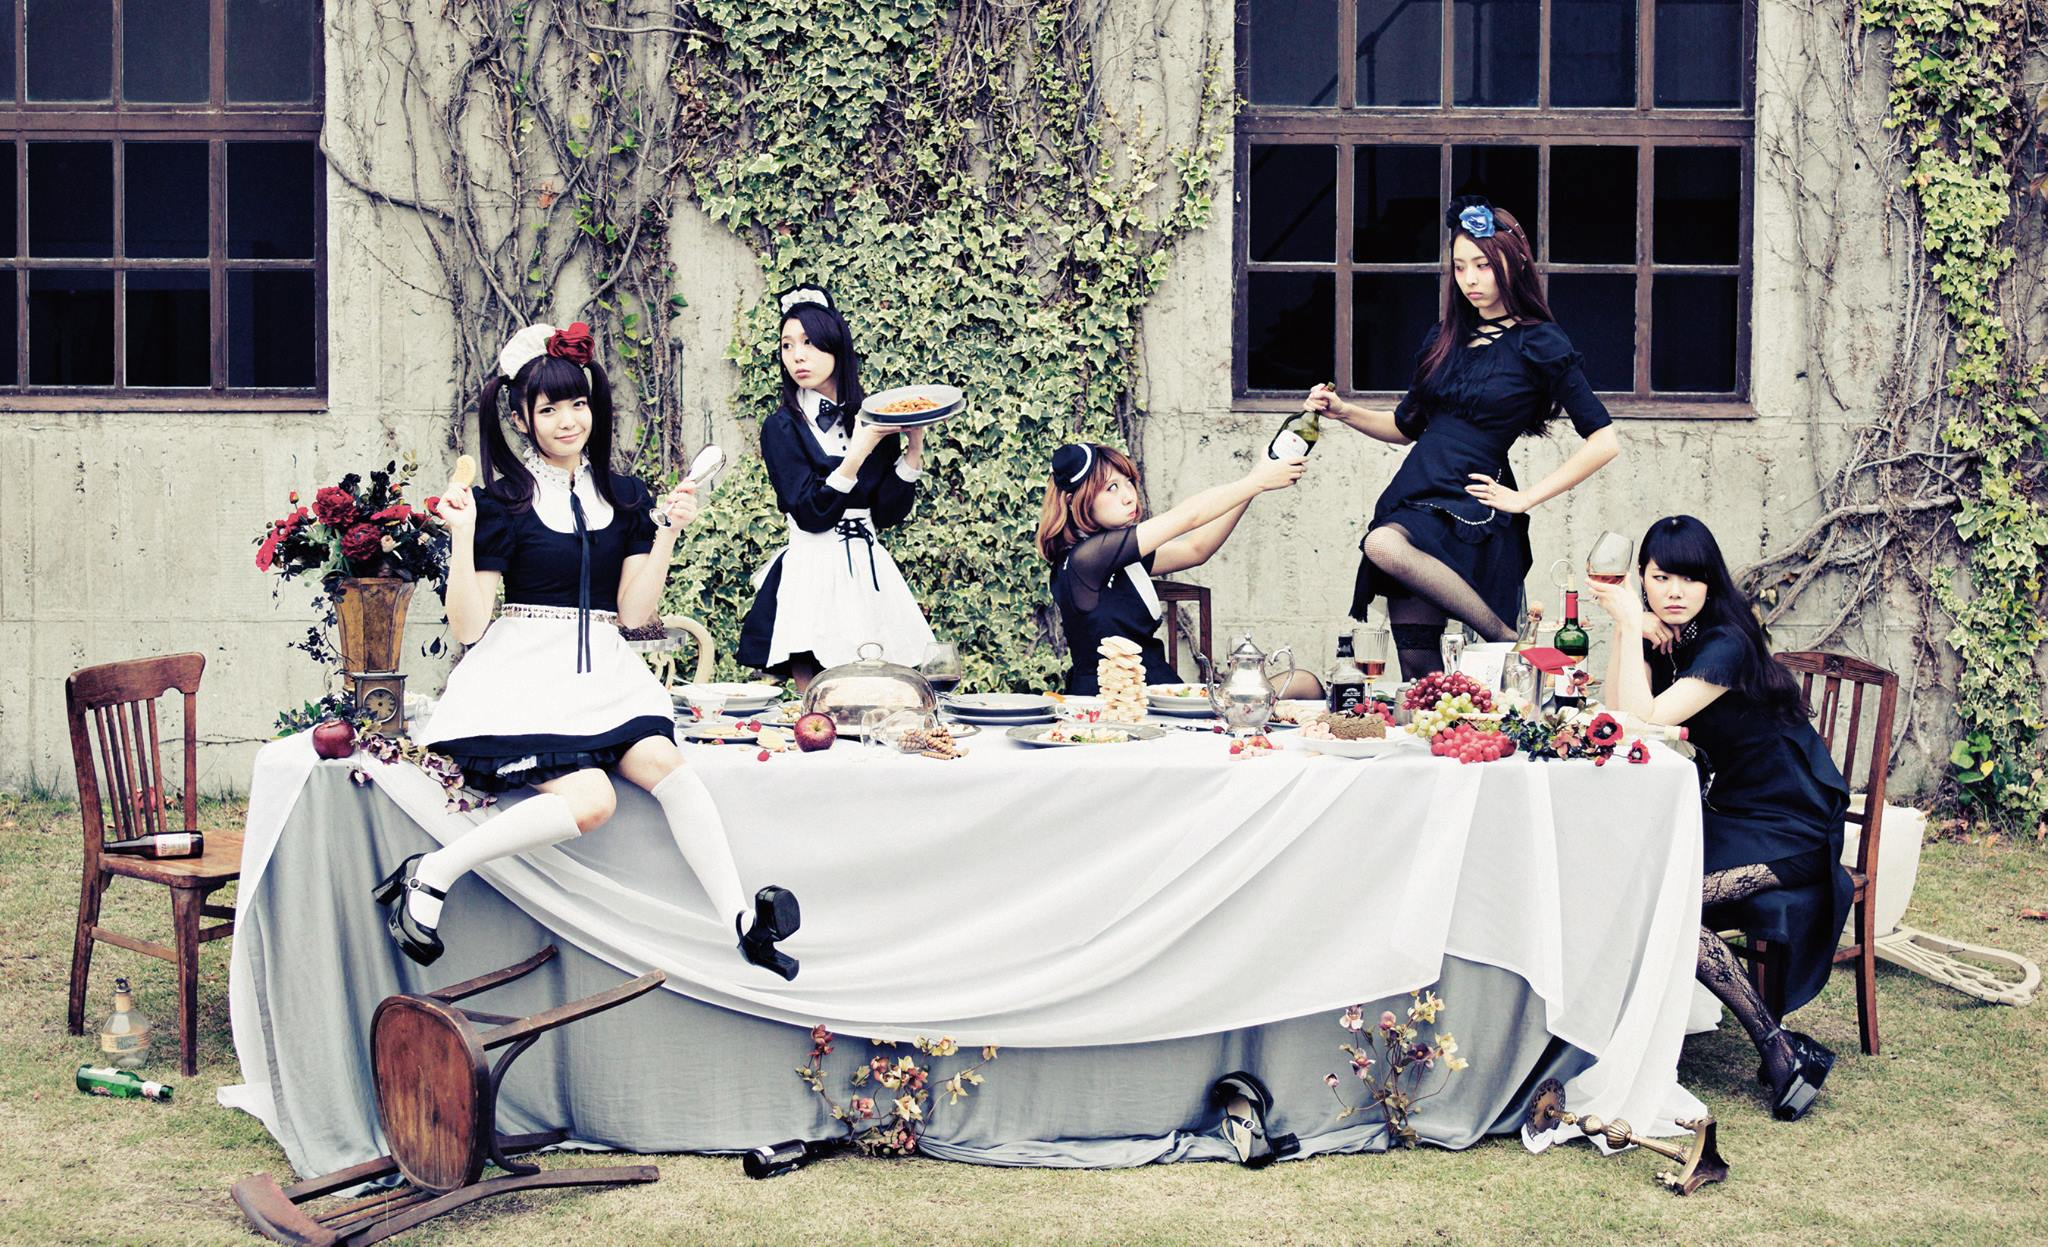 RMMS-BAND-MAID-2015-10-group-4